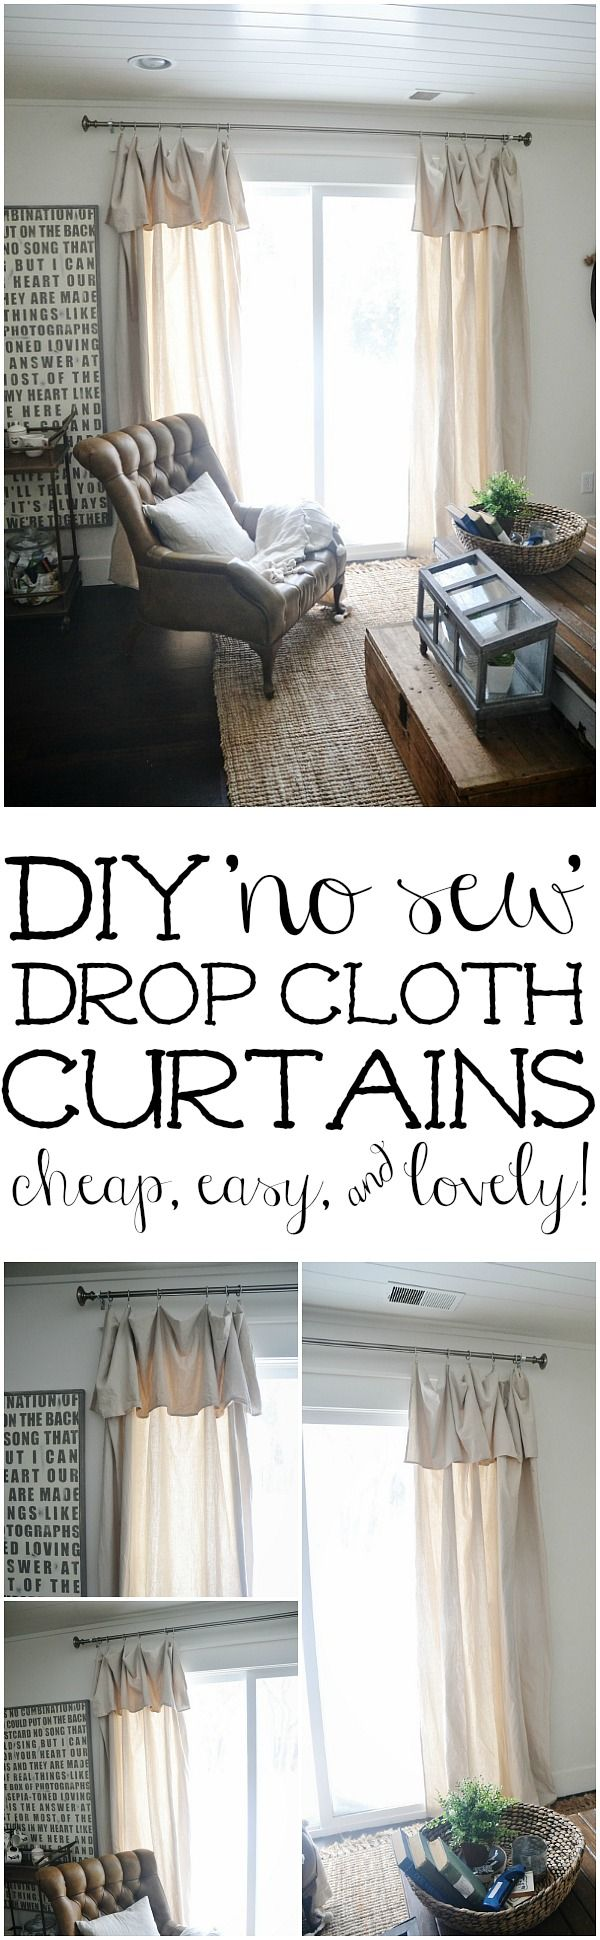 Drop clothes home depot best home design and decorating ideas - New Curtains Some Diy No Sew Curtains Drop Cloth